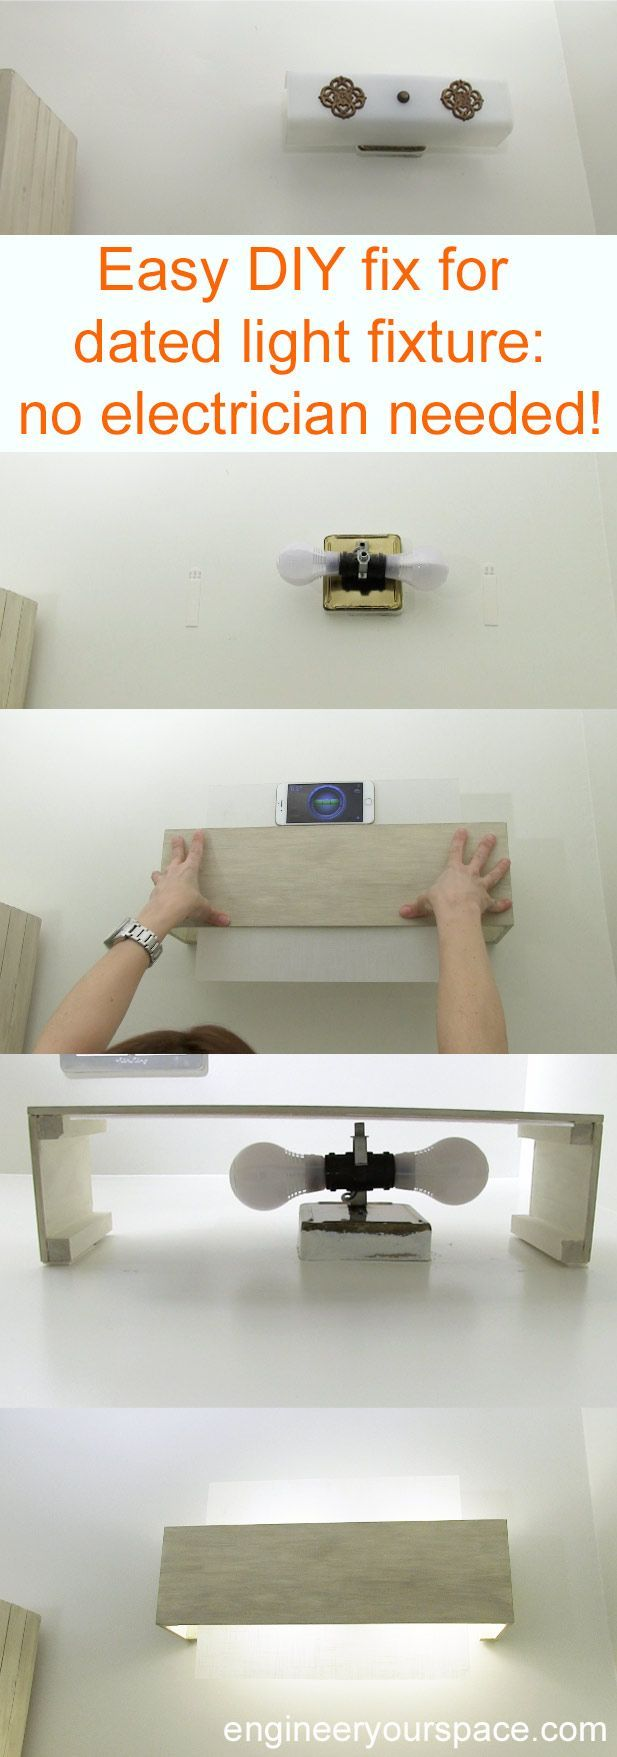 141 best images about small bathroom ideas on pinterest - Cost to install bathroom light fixture ...